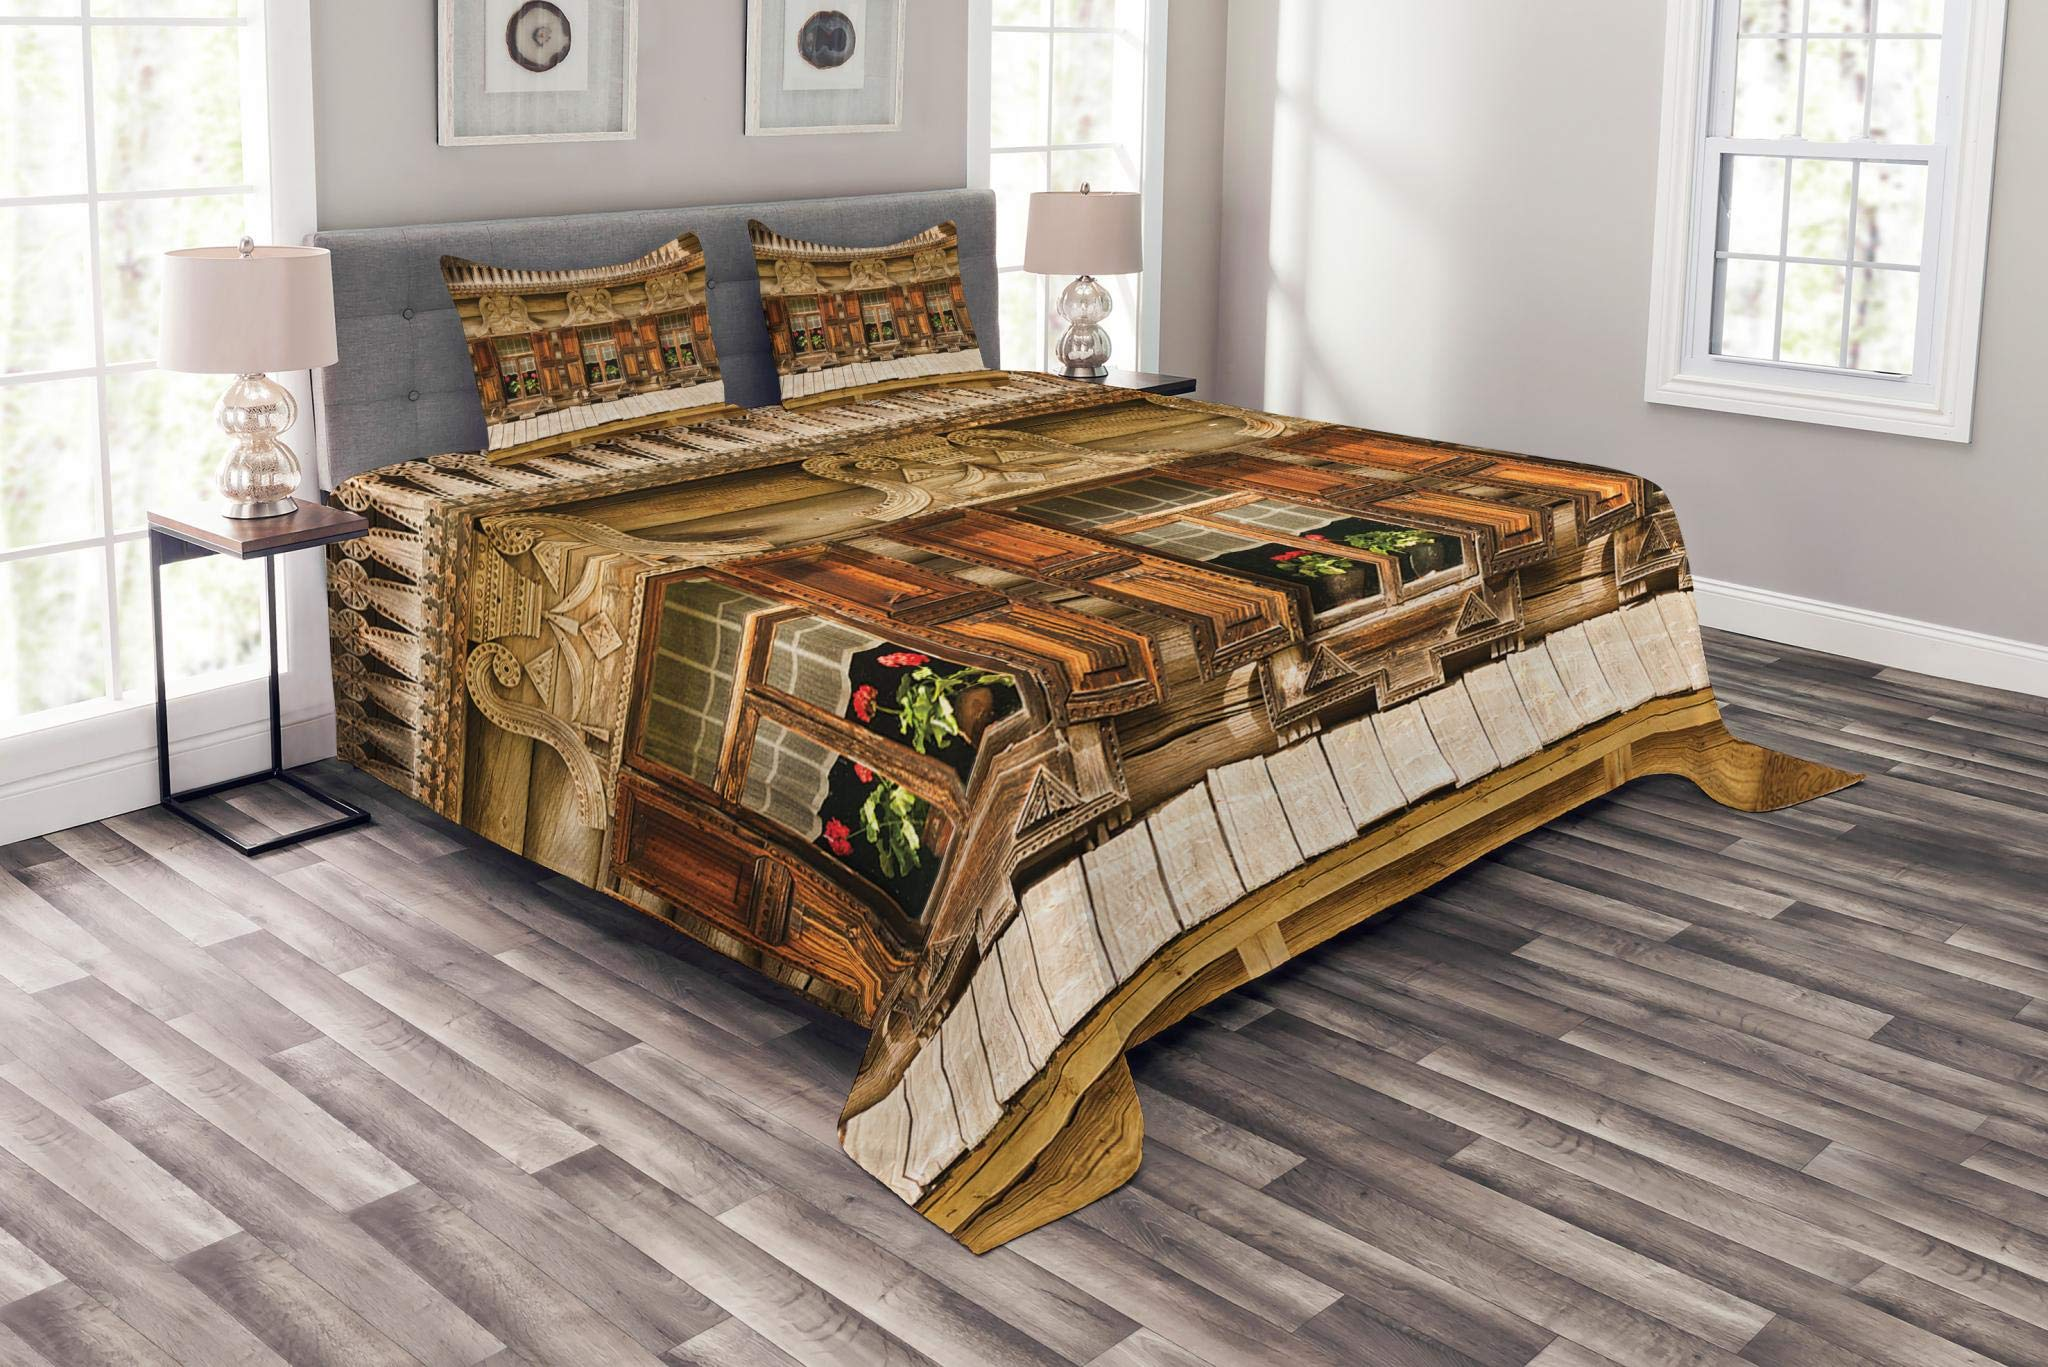 Lunarable Shutters Bedspread Set King Size, Traditional Russian Wooden Building with Three Windows in Veliky Novgorod Picture, Decorative Quilted 3 Piece Coverlet Set with 2 Pillow Shams, Brown Green